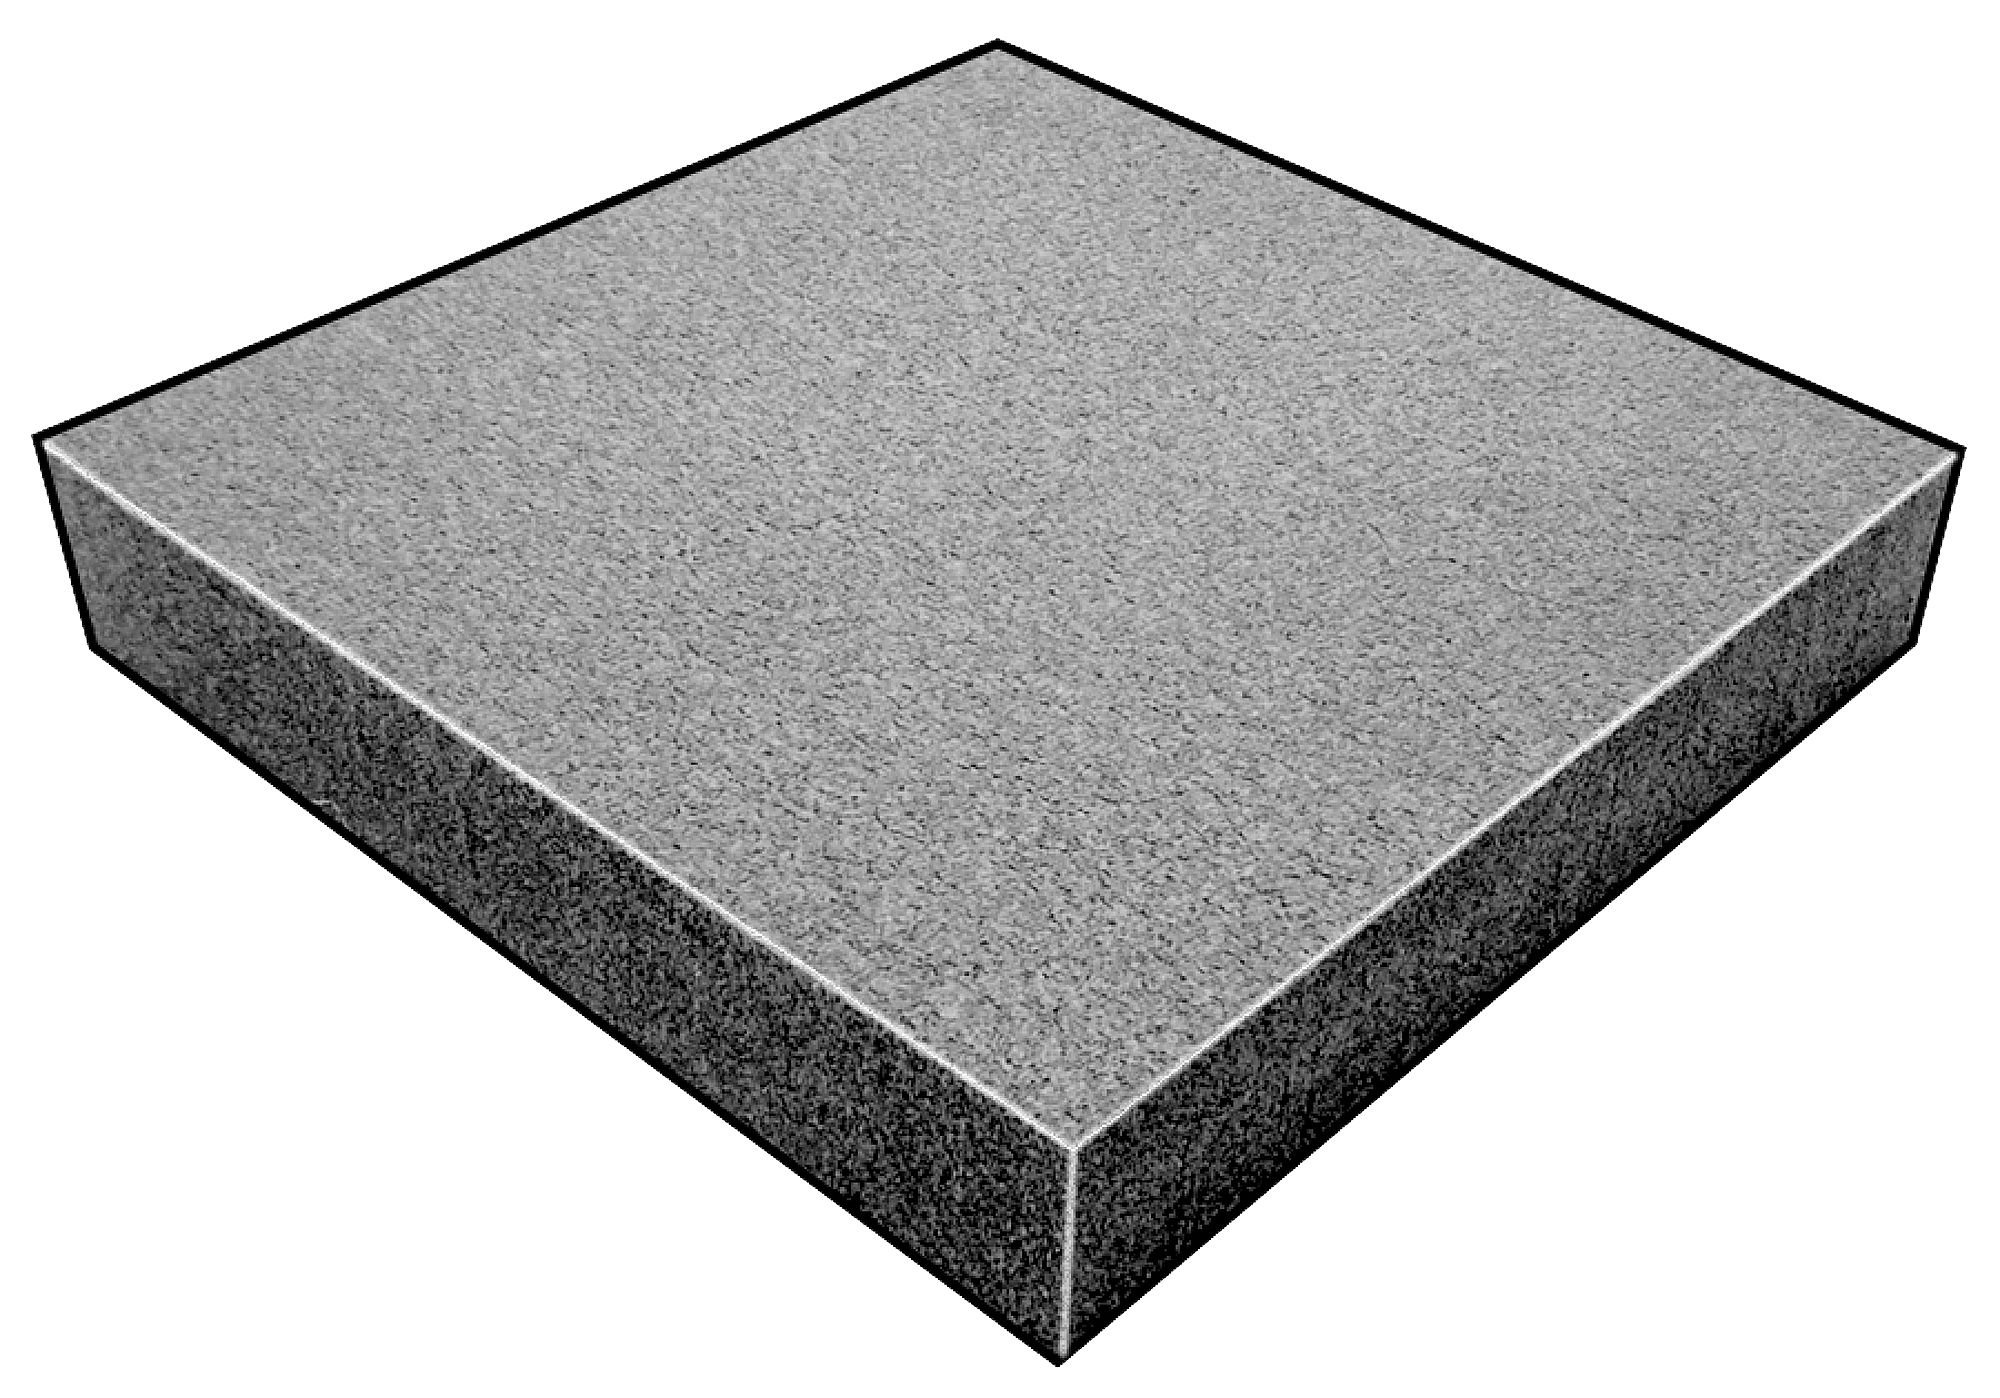 Foam Sheet, 220 Poly, Charcoal, 1x24 x18 In by GRAINGER APPROVED